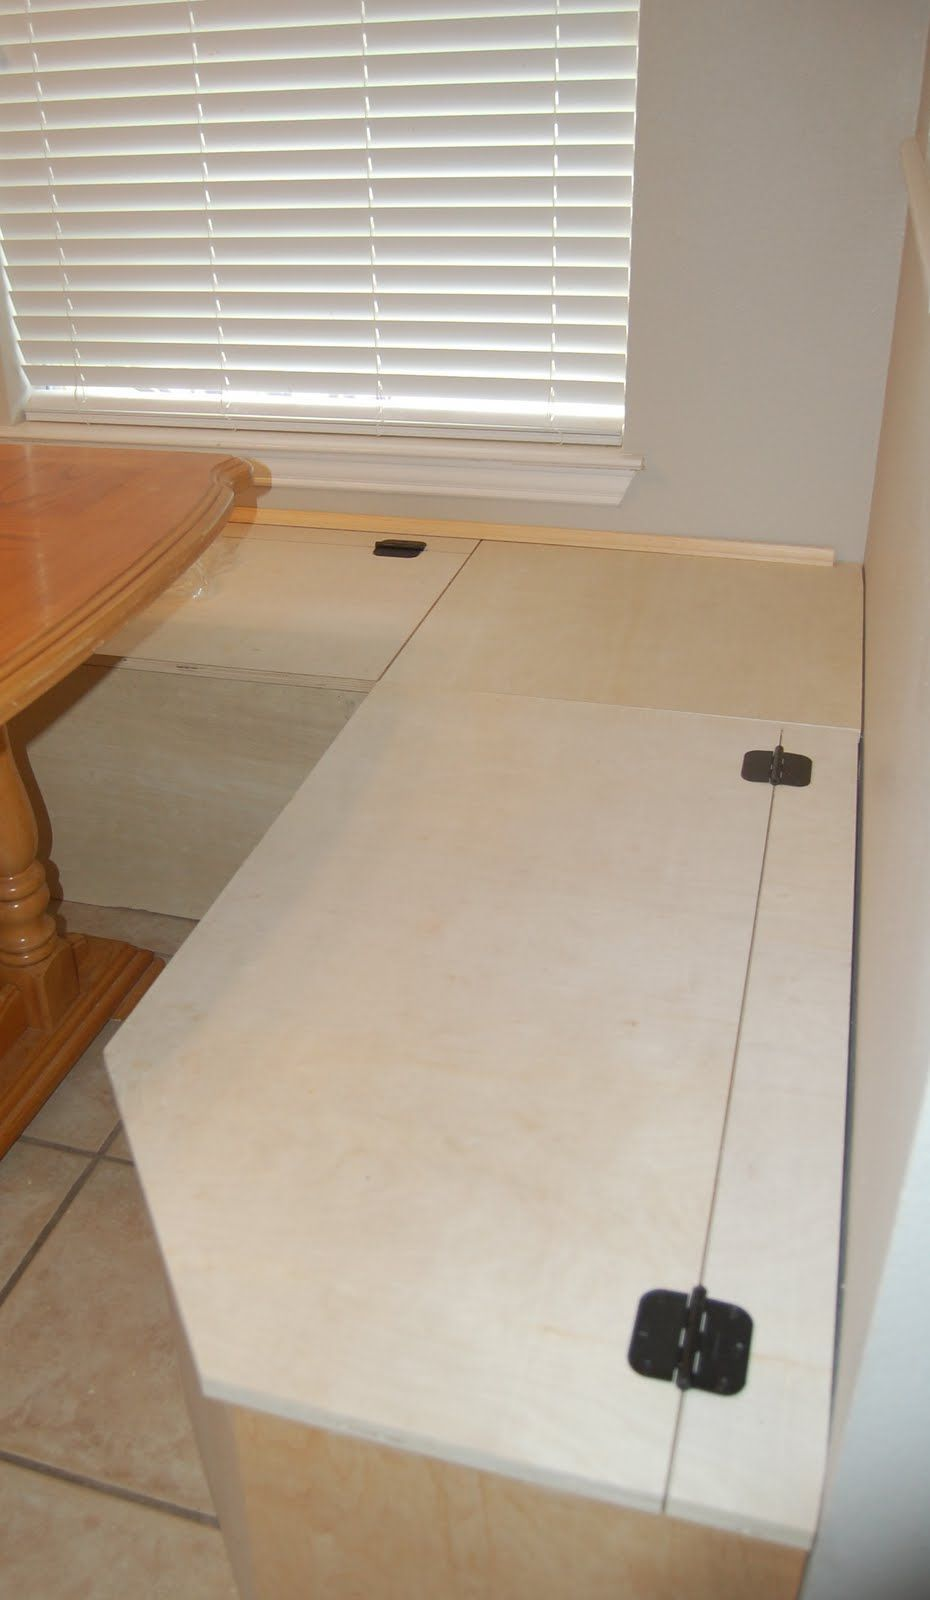 Cool diy banquettes ideas - Banquette Idea For Window Seat Cool Idea To Angle The Outside Corners